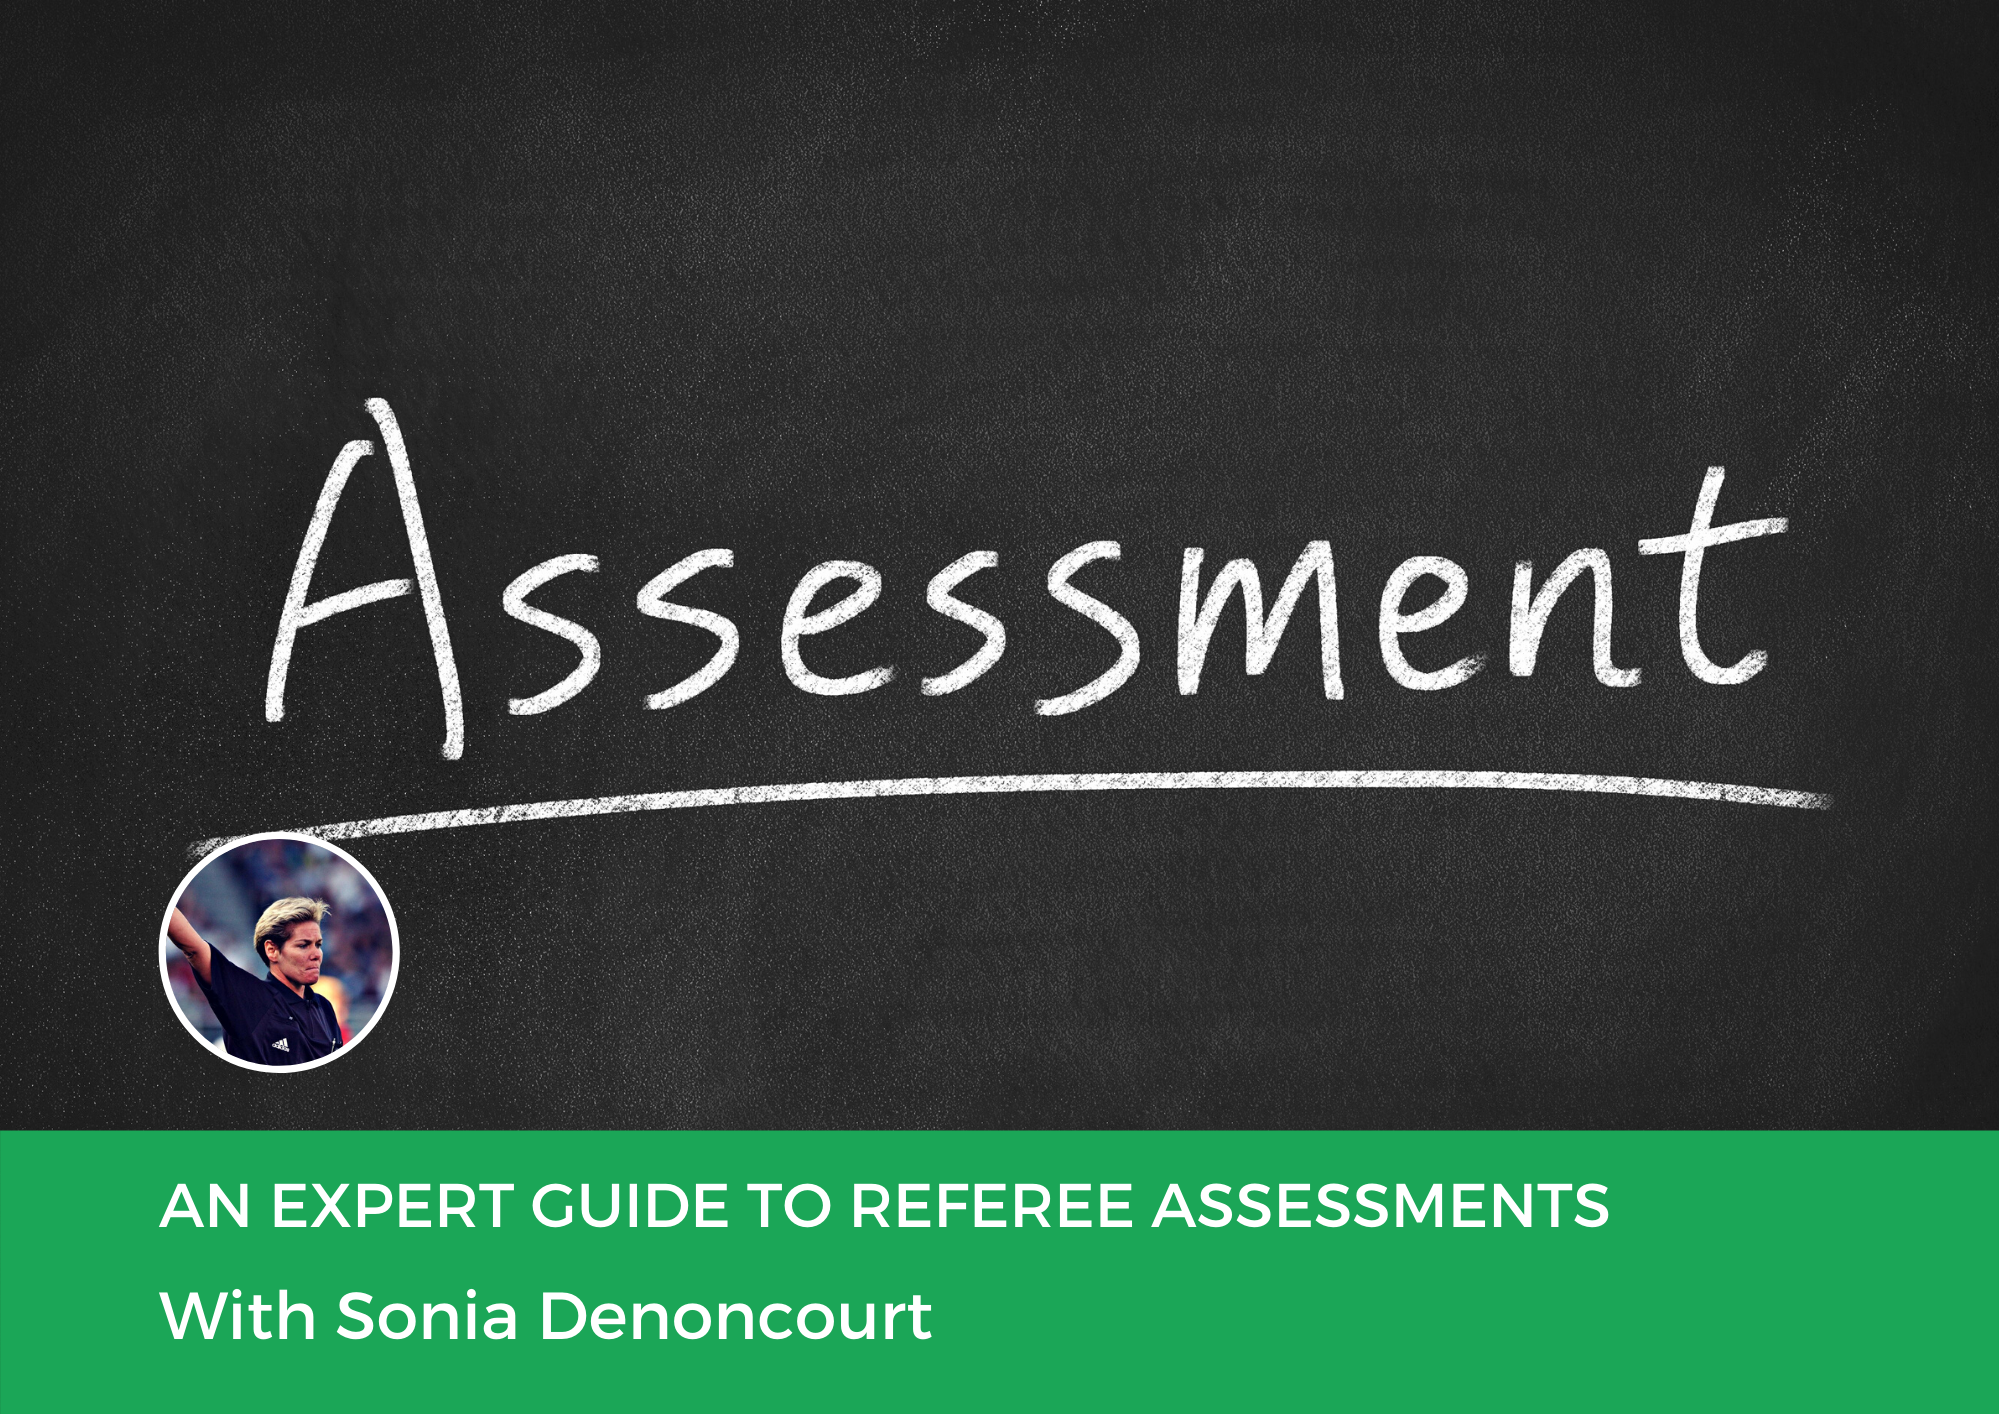 An Expert Guide to Referee Assessments